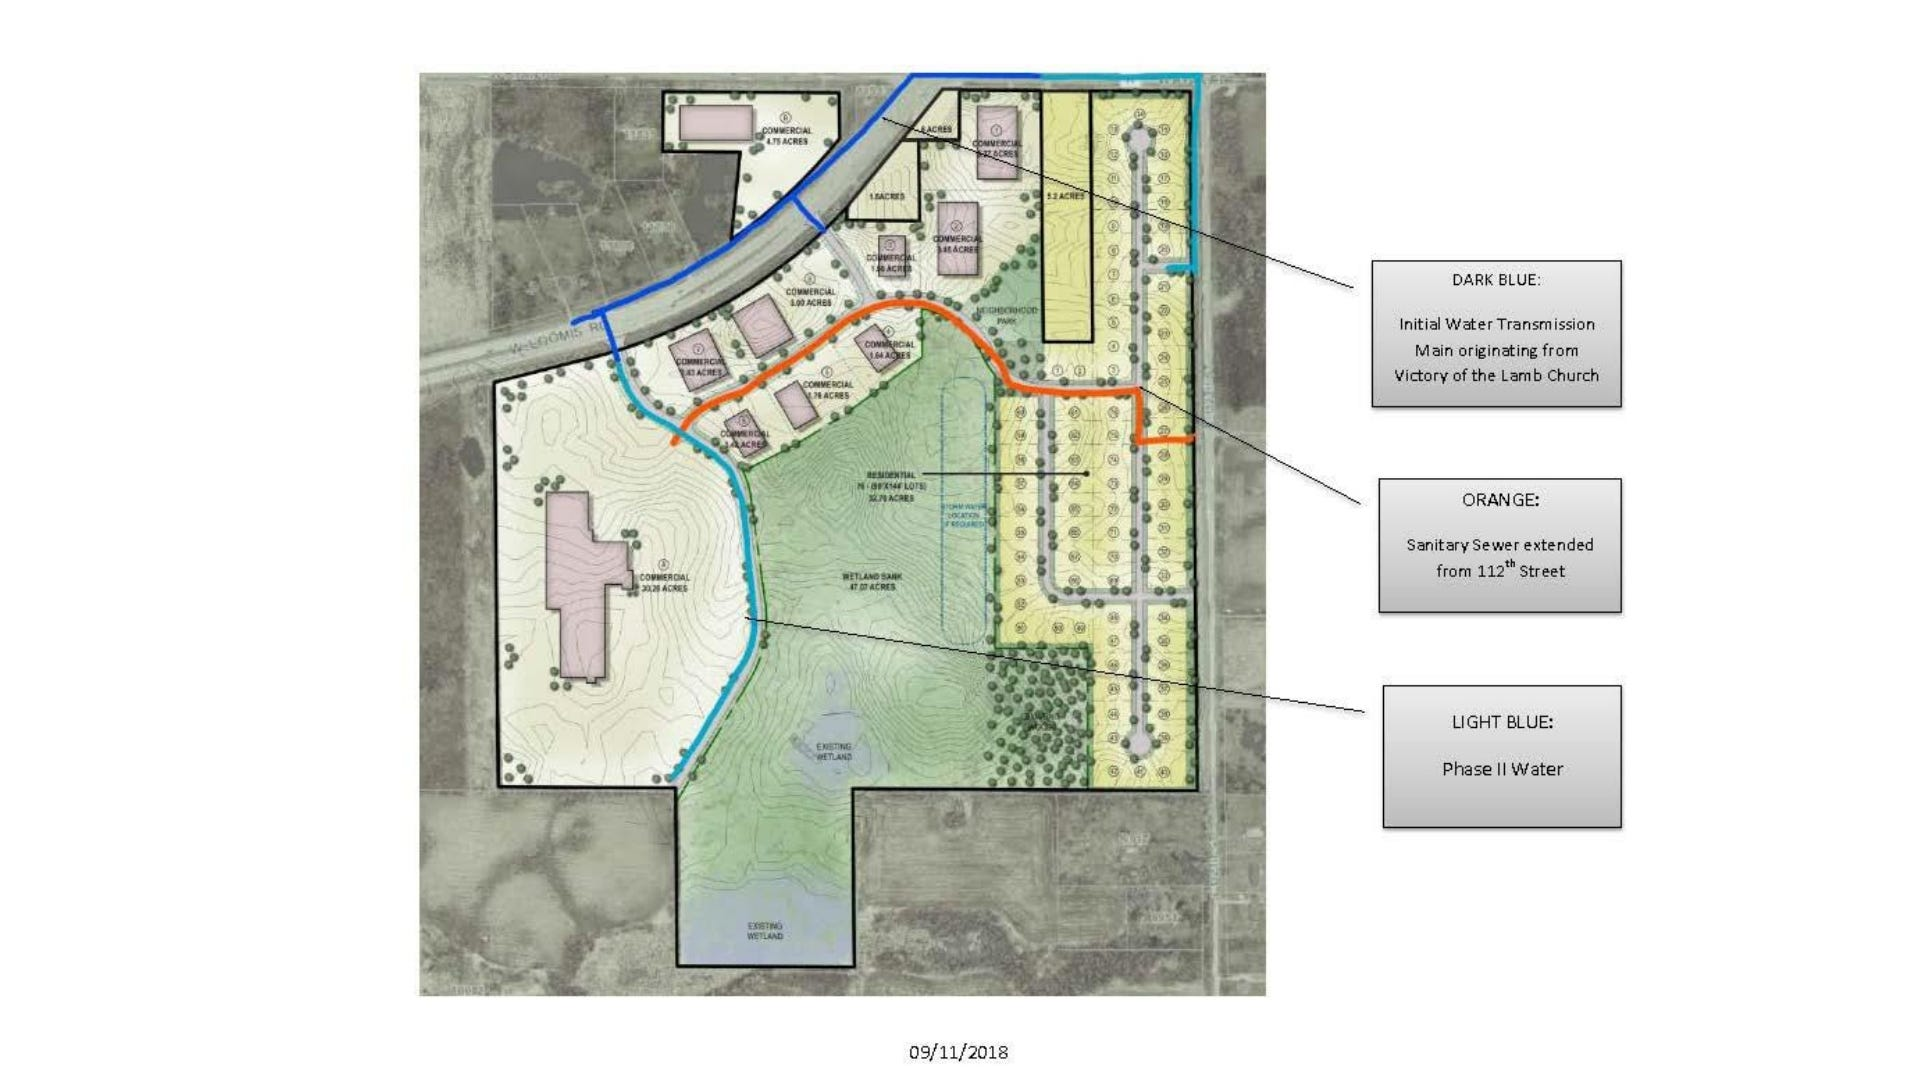 Franklin OKs funding for proposal that includes industrial, commercial, residential development